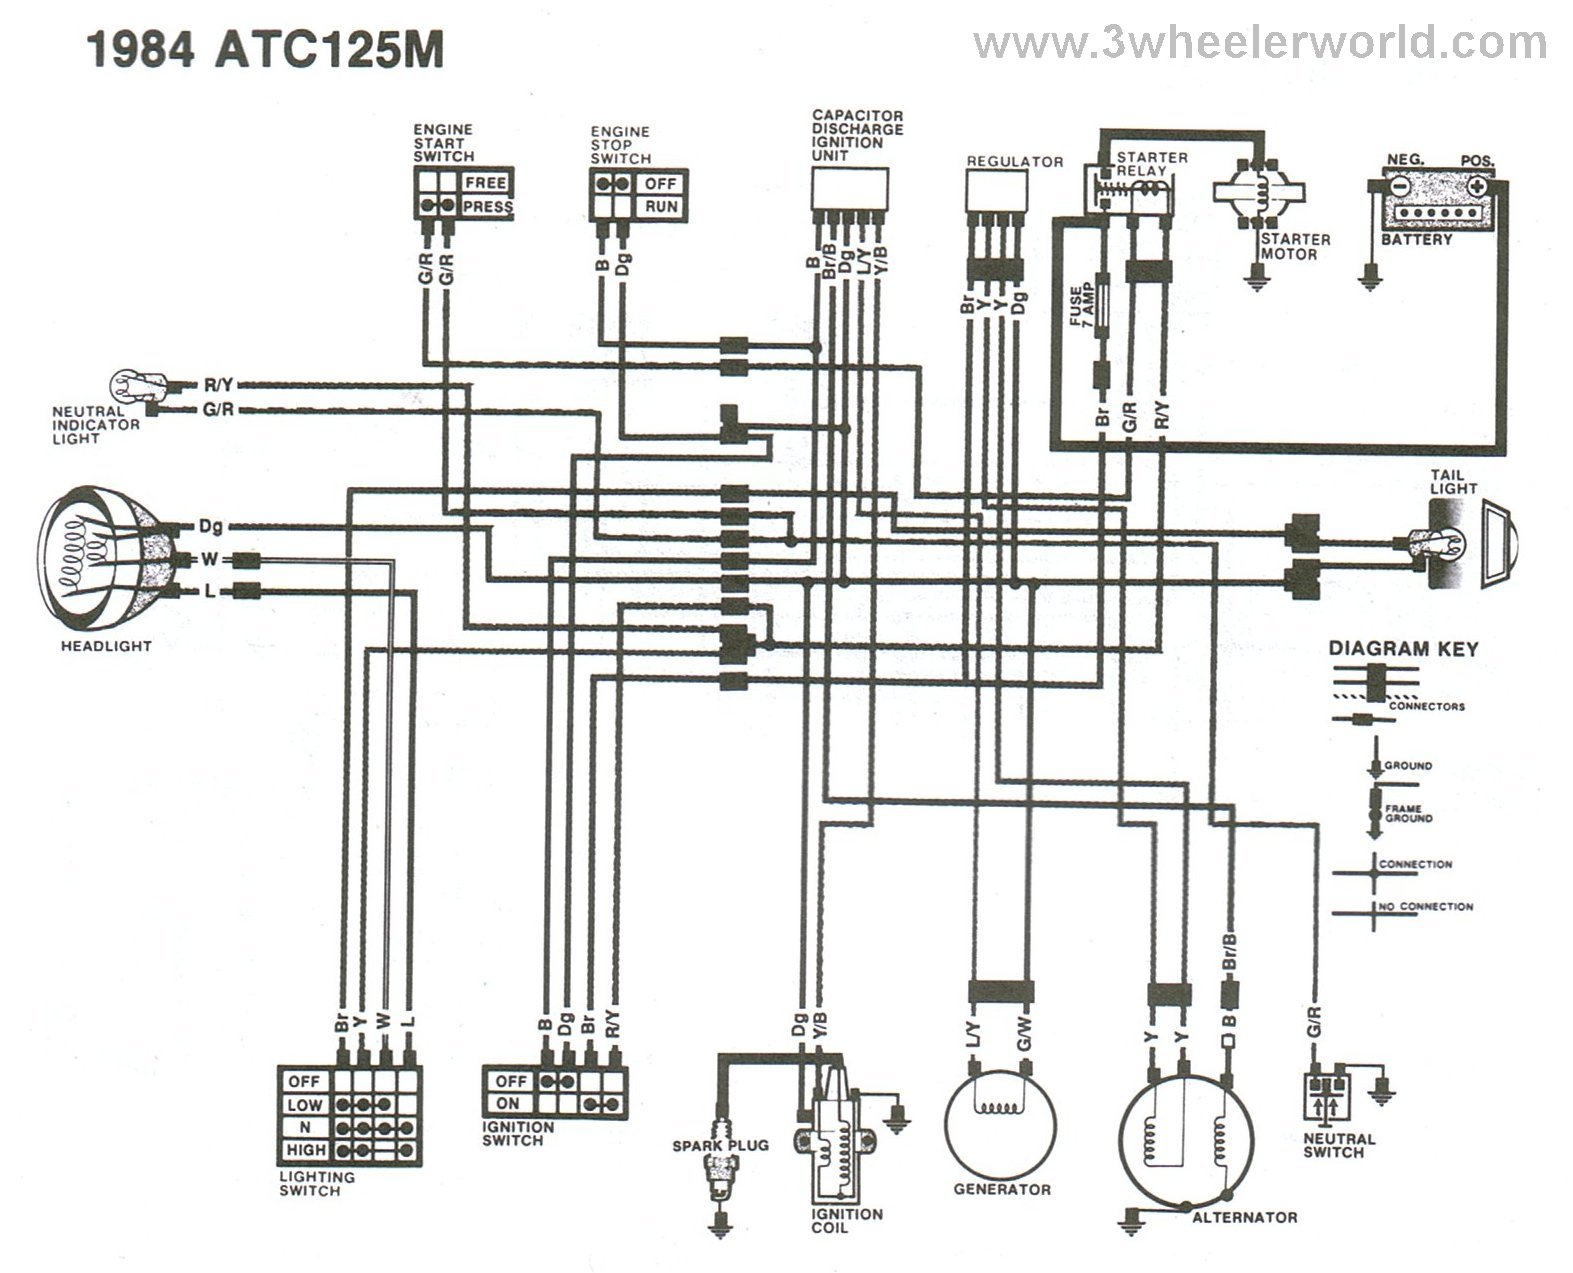 ATC125Mx84 3 wheeler world tech help honda wiring diagrams 1986 honda civic wiring diagram at soozxer.org